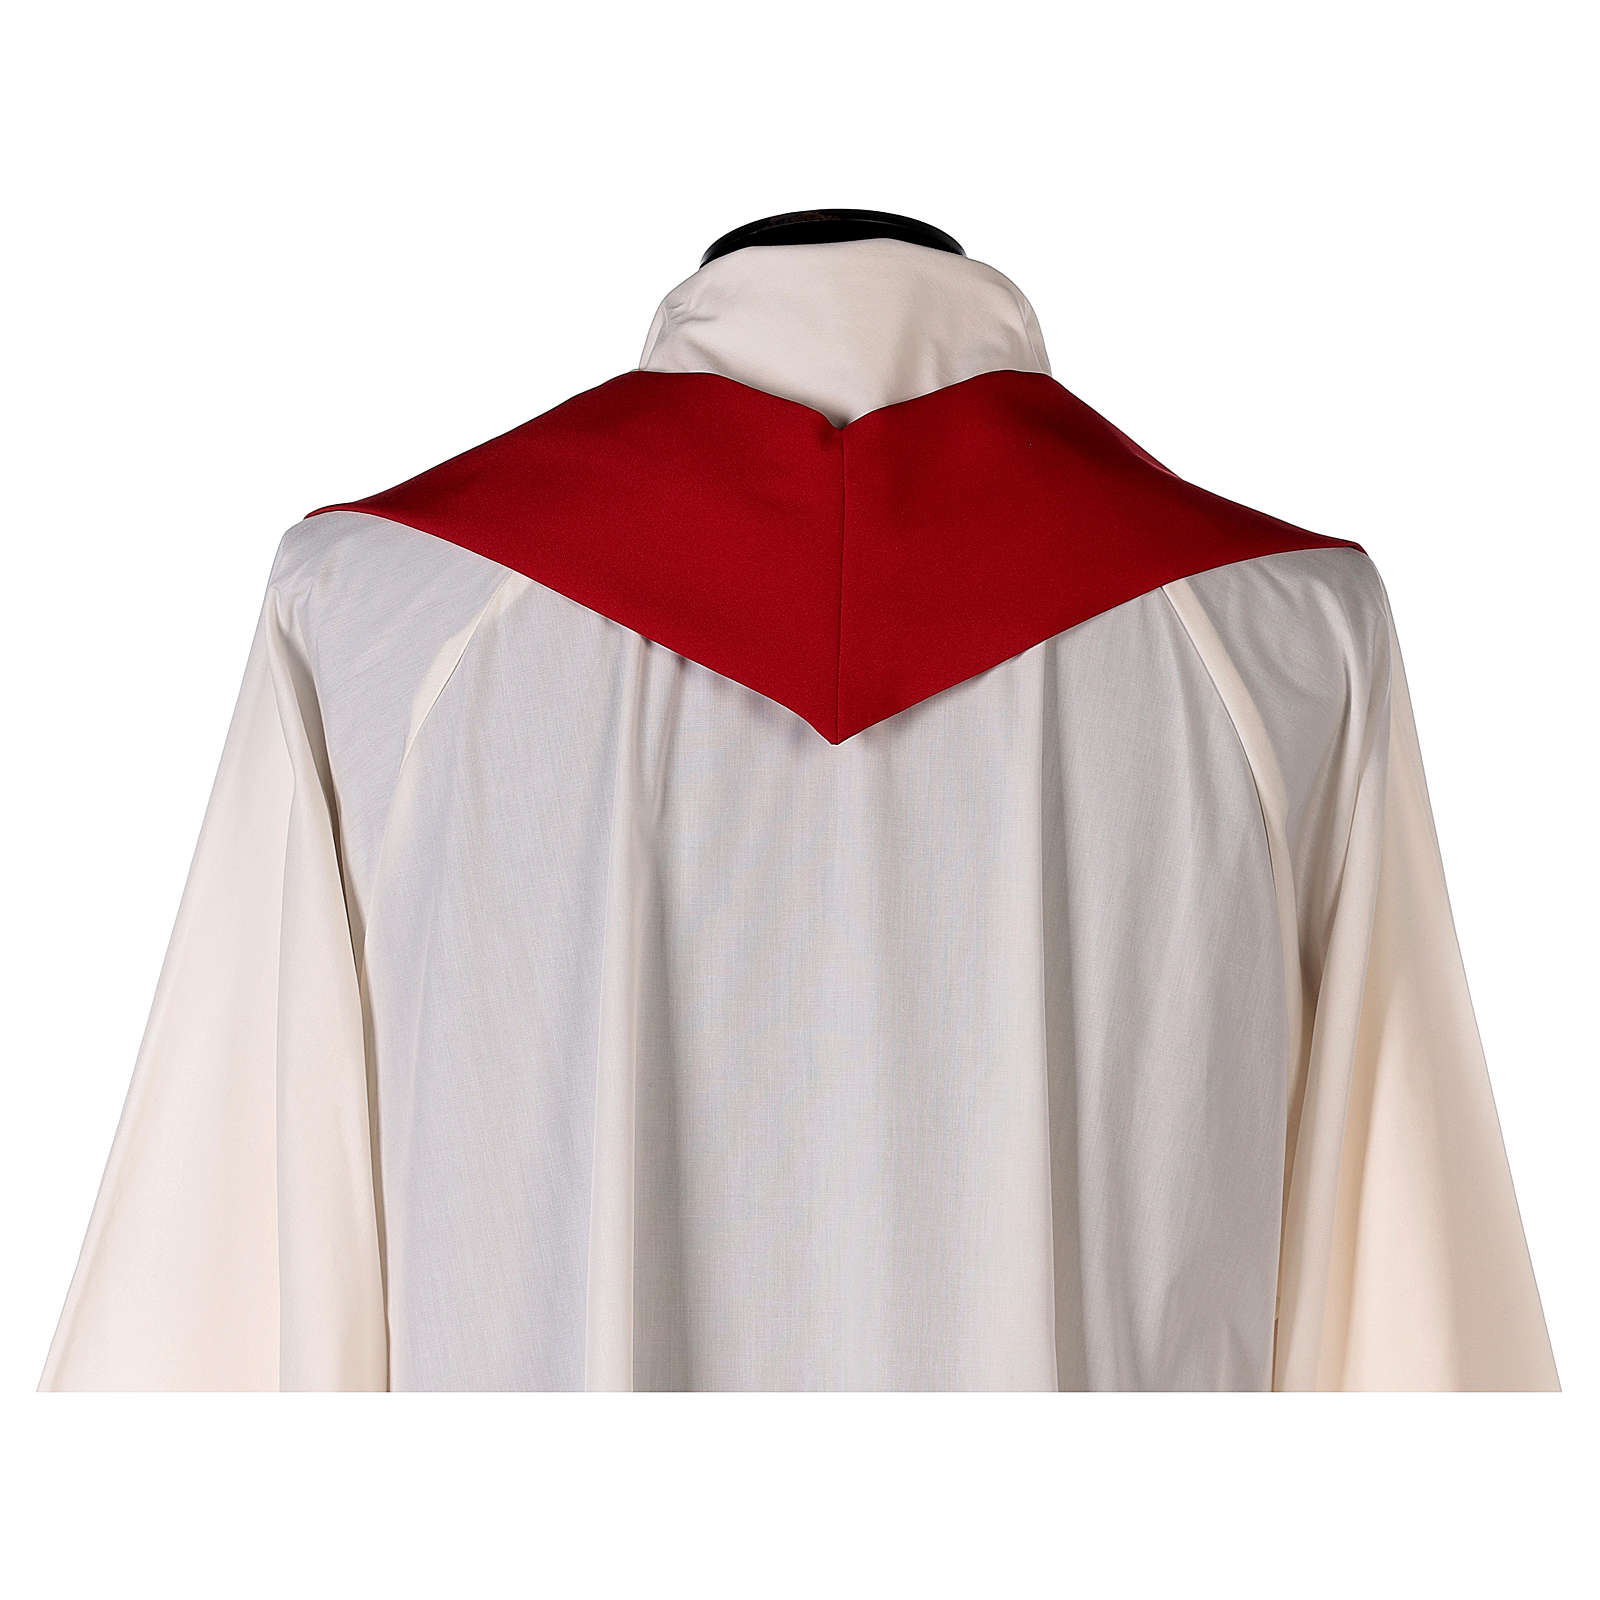 IHS grapes Gothic Chasuble 100% polyester 4